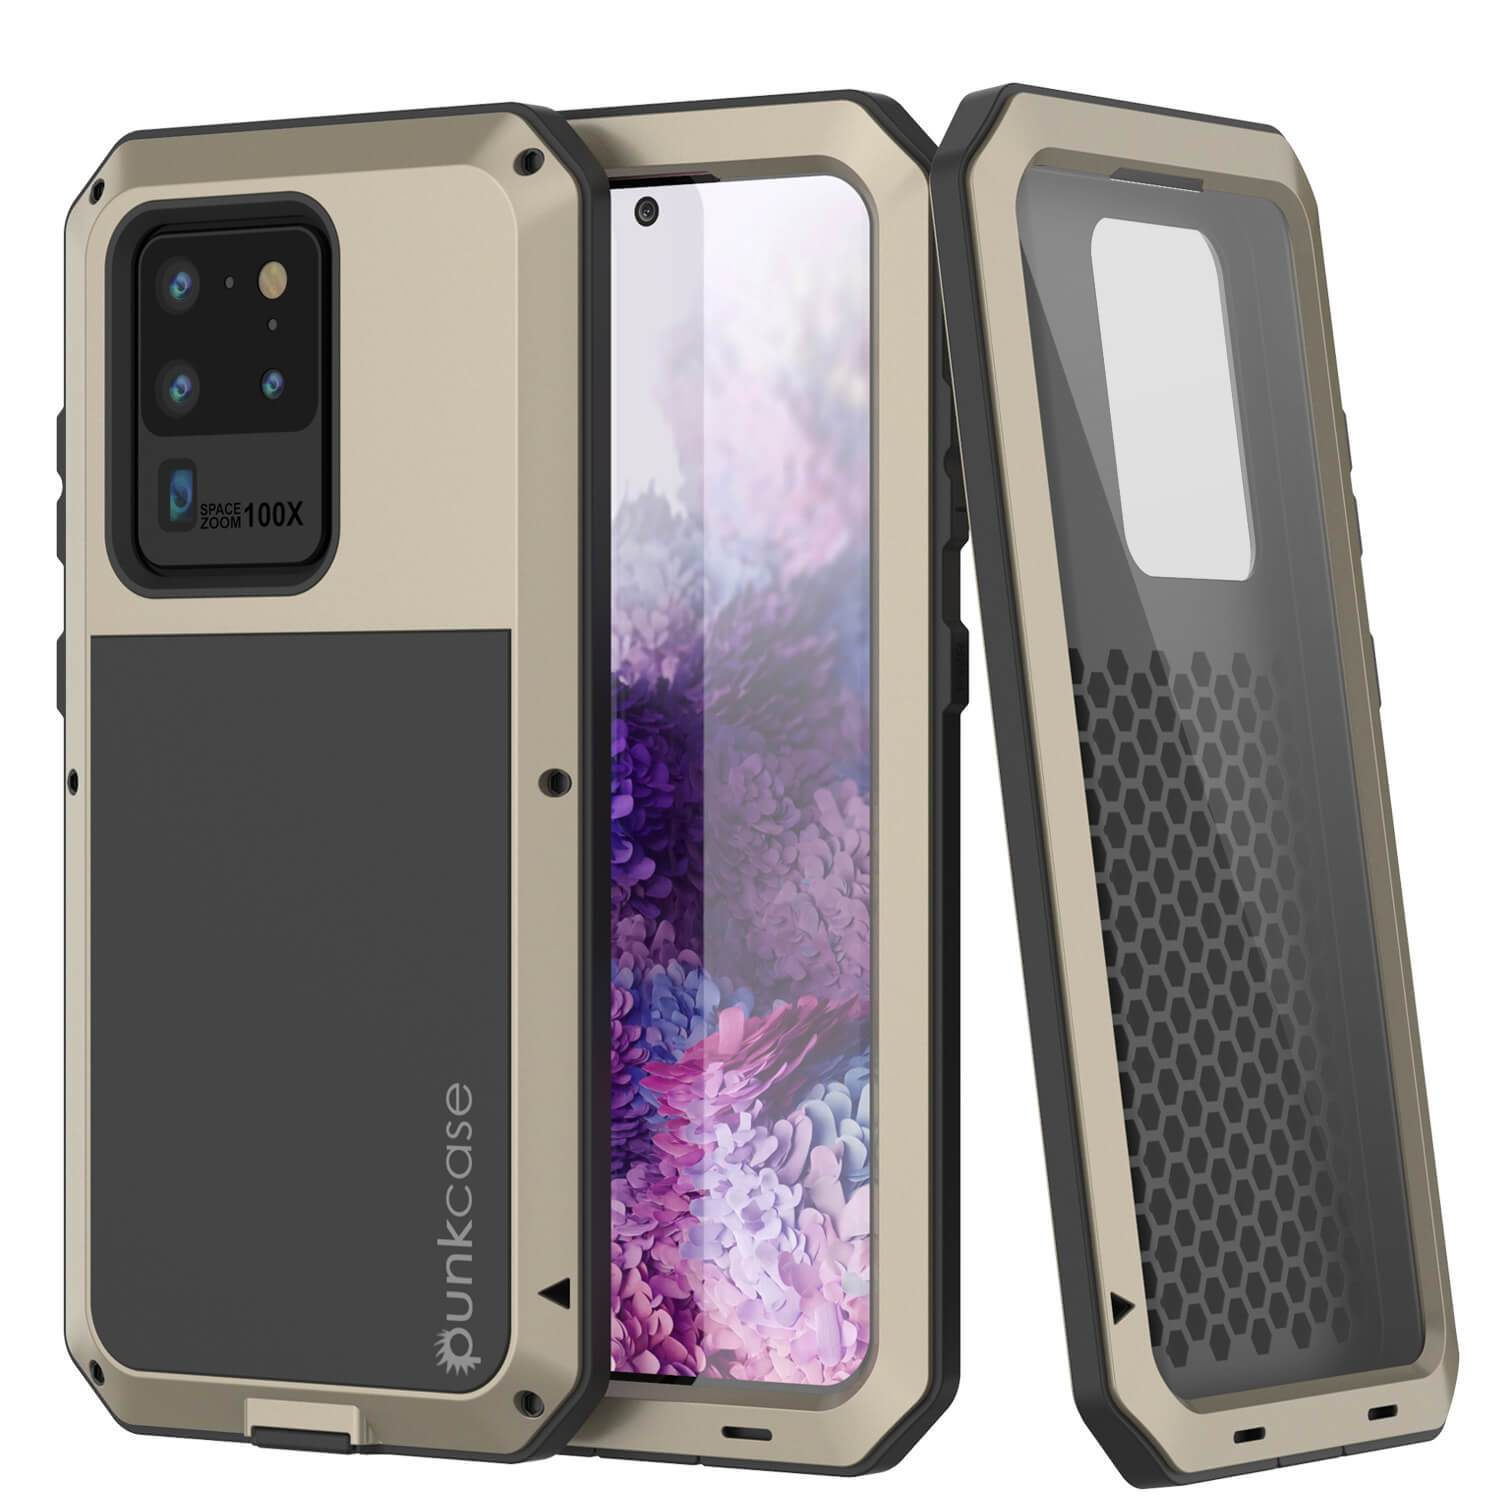 Galaxy S20 Ultra Metal Case, Heavy Duty Military Grade Rugged Armor Cover [Gold]